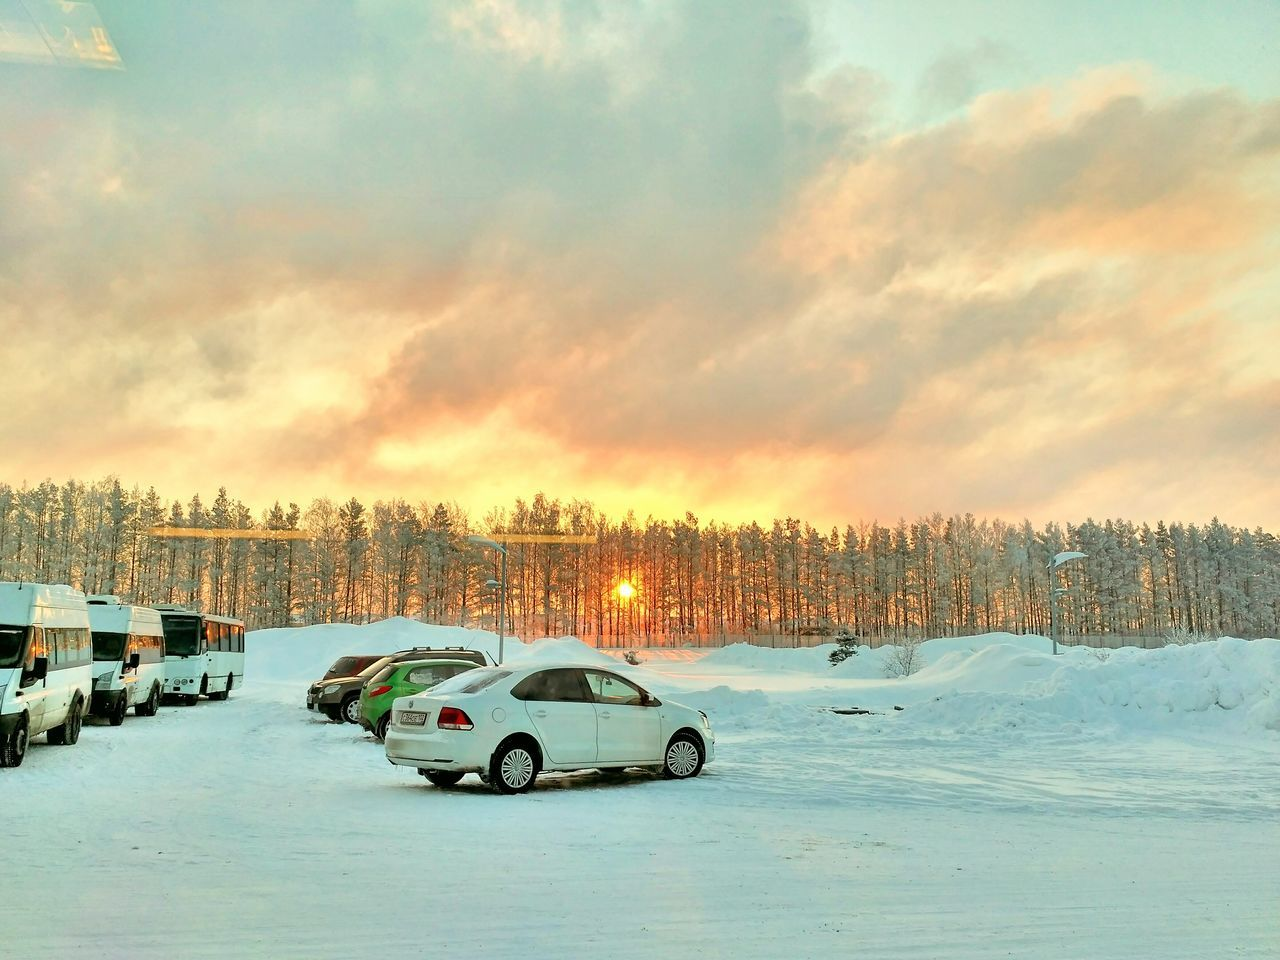 car, transportation, land vehicle, mode of transport, cold temperature, winter, snow, sky, no people, nature, cloud - sky, outdoors, tree, beauty in nature, scenics, day